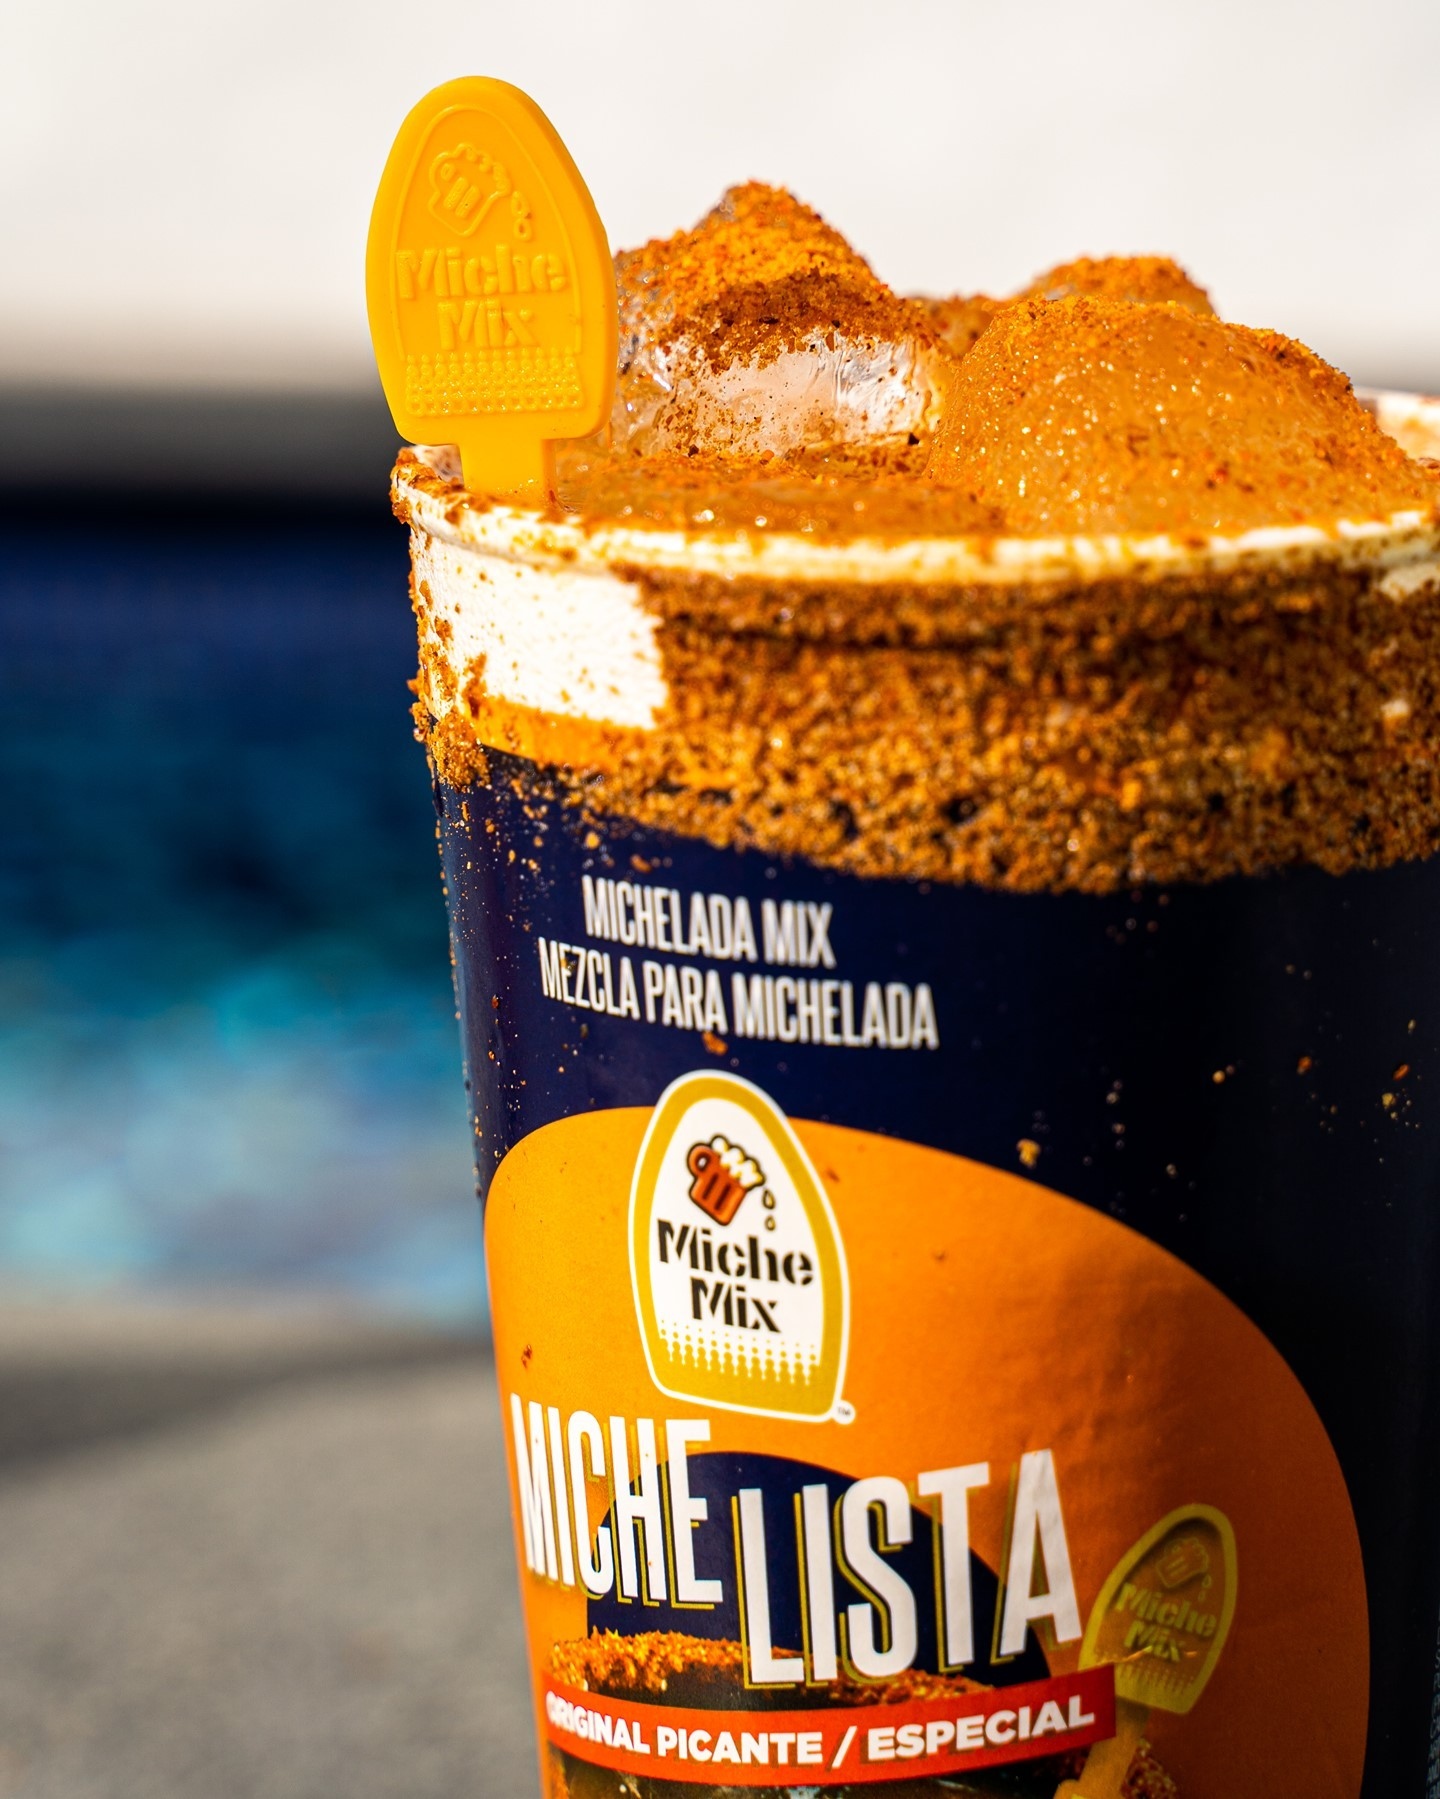 Lets get this Michelista in our system and enjoy our weekend!